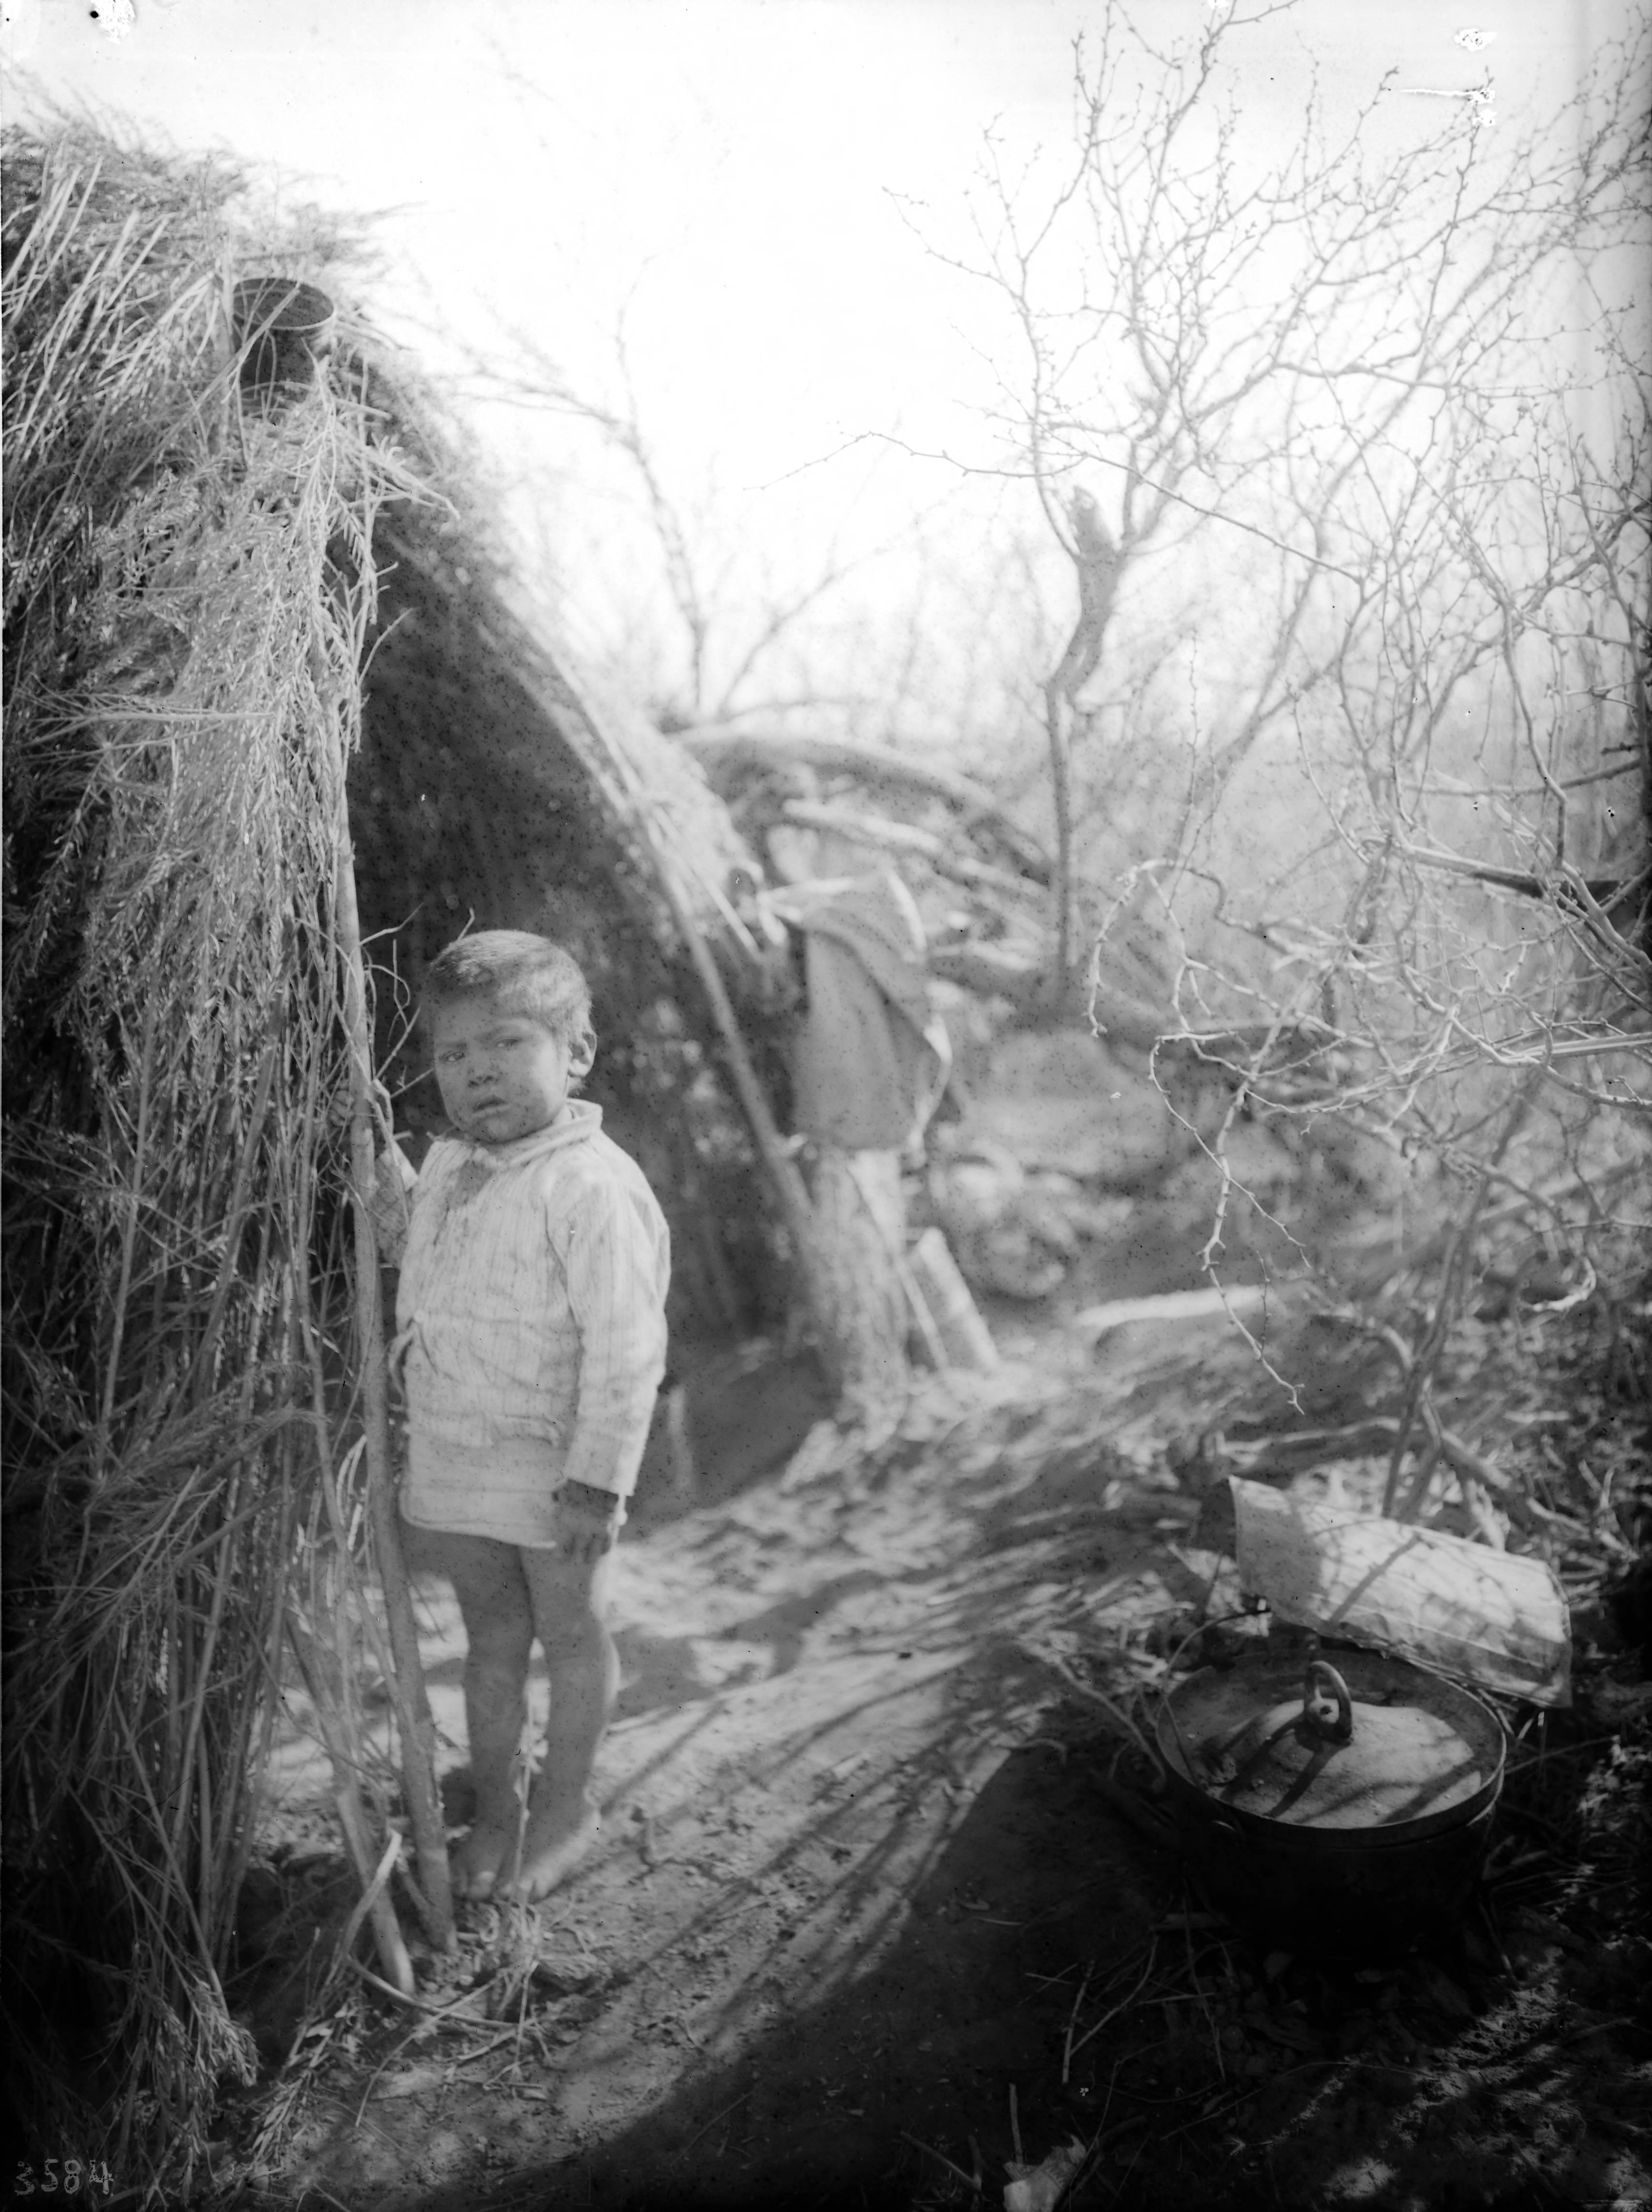 Apache Indian Tribe Houses File:apache indian boy